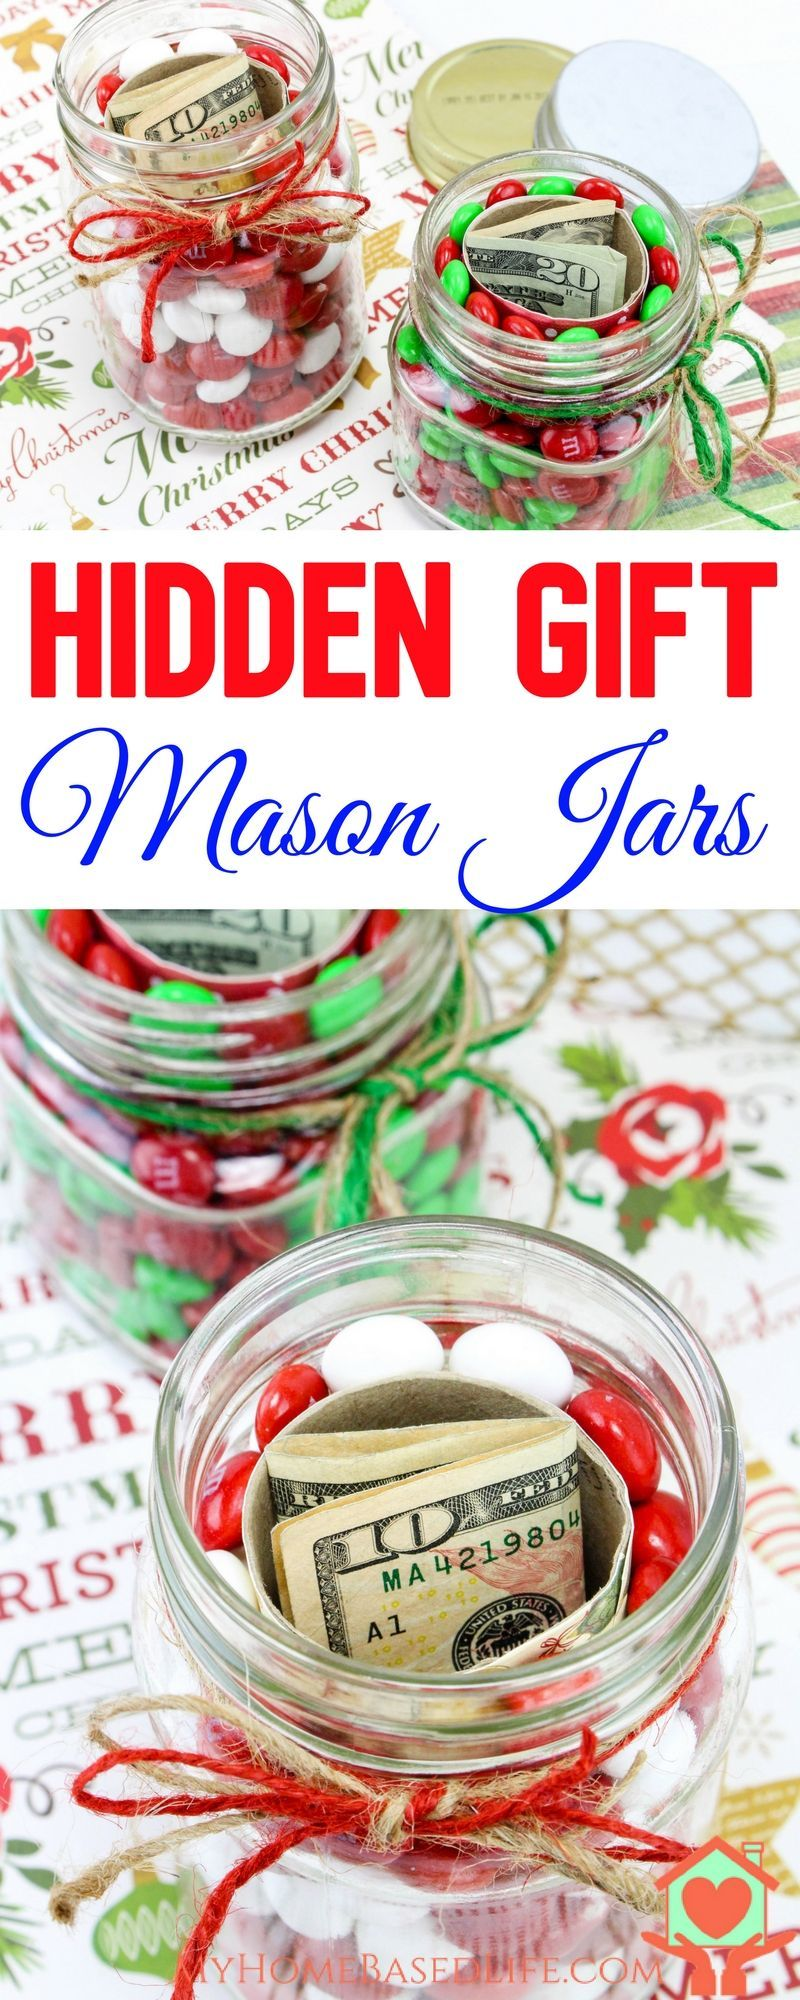 Hidden Gift Jars Make Giving The Gift Of Money A Mystery Christmas Jars Diy Christmas Gifts Food Homemade Christmas Gifts